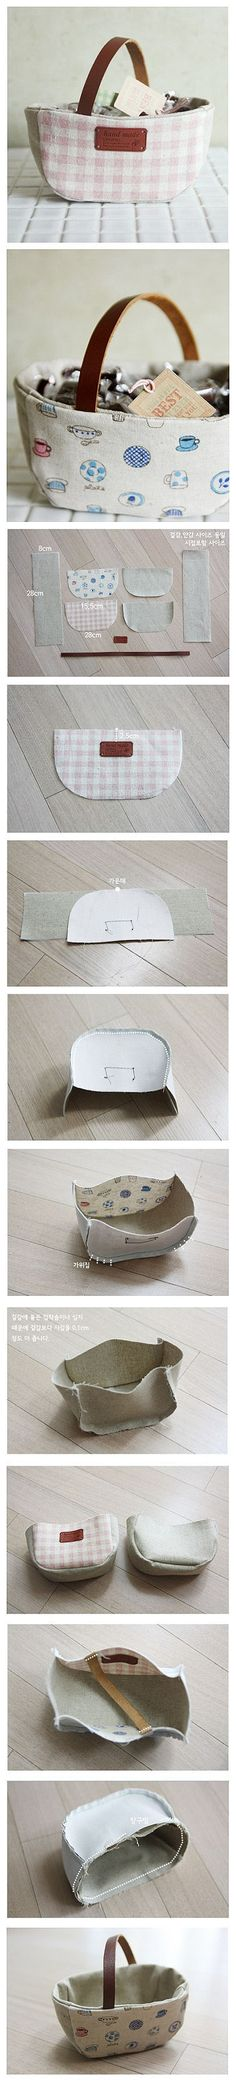 #Fabric #basket #tutorial.